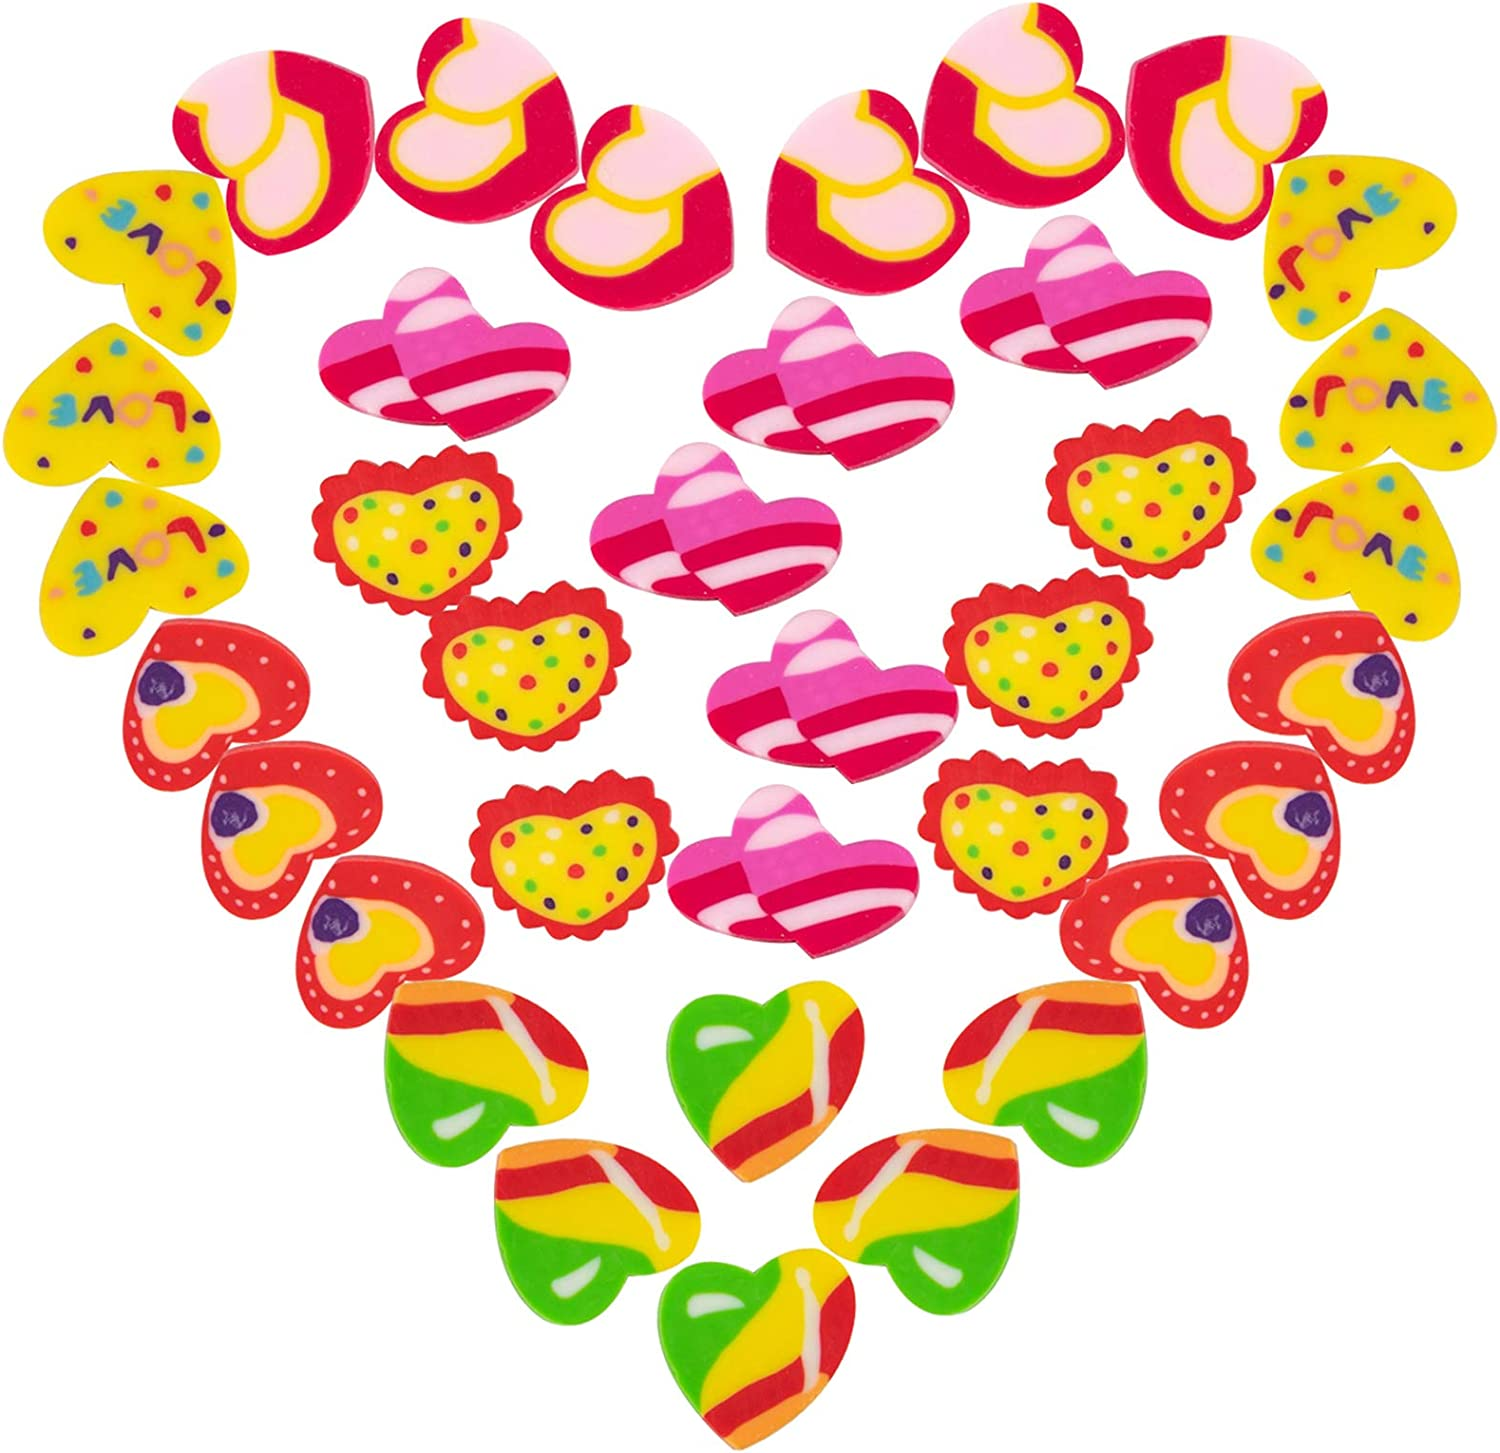 Biubee 36 Pcs Valentine's Day Hearts Shaped Erasers- 6 Various Styles Mini Heart Valentines Rubber Eraser for Valentine Party Favors Gifts School Classroom Teacher Rewards Office Supplies